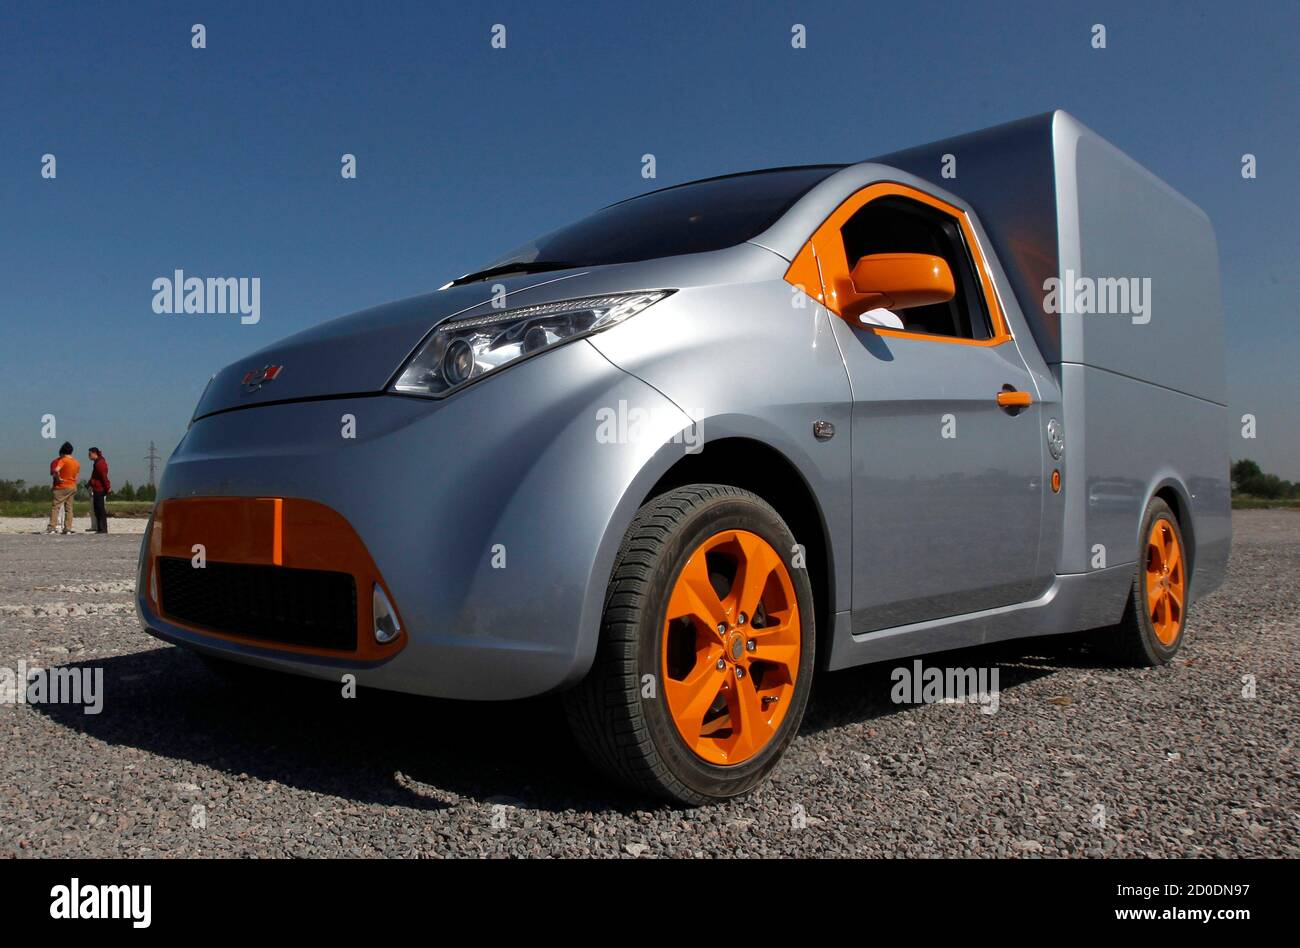 """A Furgon automobile is displayed during a ceremony to start the construction of the plant to produce Russian new car brand """"e"""" automobiles, designed by Onexim Group company, owned by billionaire Mikhail Prokhorov, outside St. Petersburg June 8, 2011. Russian new car brand """"e"""" (""""e with two dots above"""" is the seventh letter in Russian alphabet) automobiles will become the world's cheapest hybrids, priced at $10,000, according to the company's representatives.  REUTERS/Alexander Demianchuk  (RUSSIA - Tags: BUSINESS TRANSPORT) Foto de stock"""